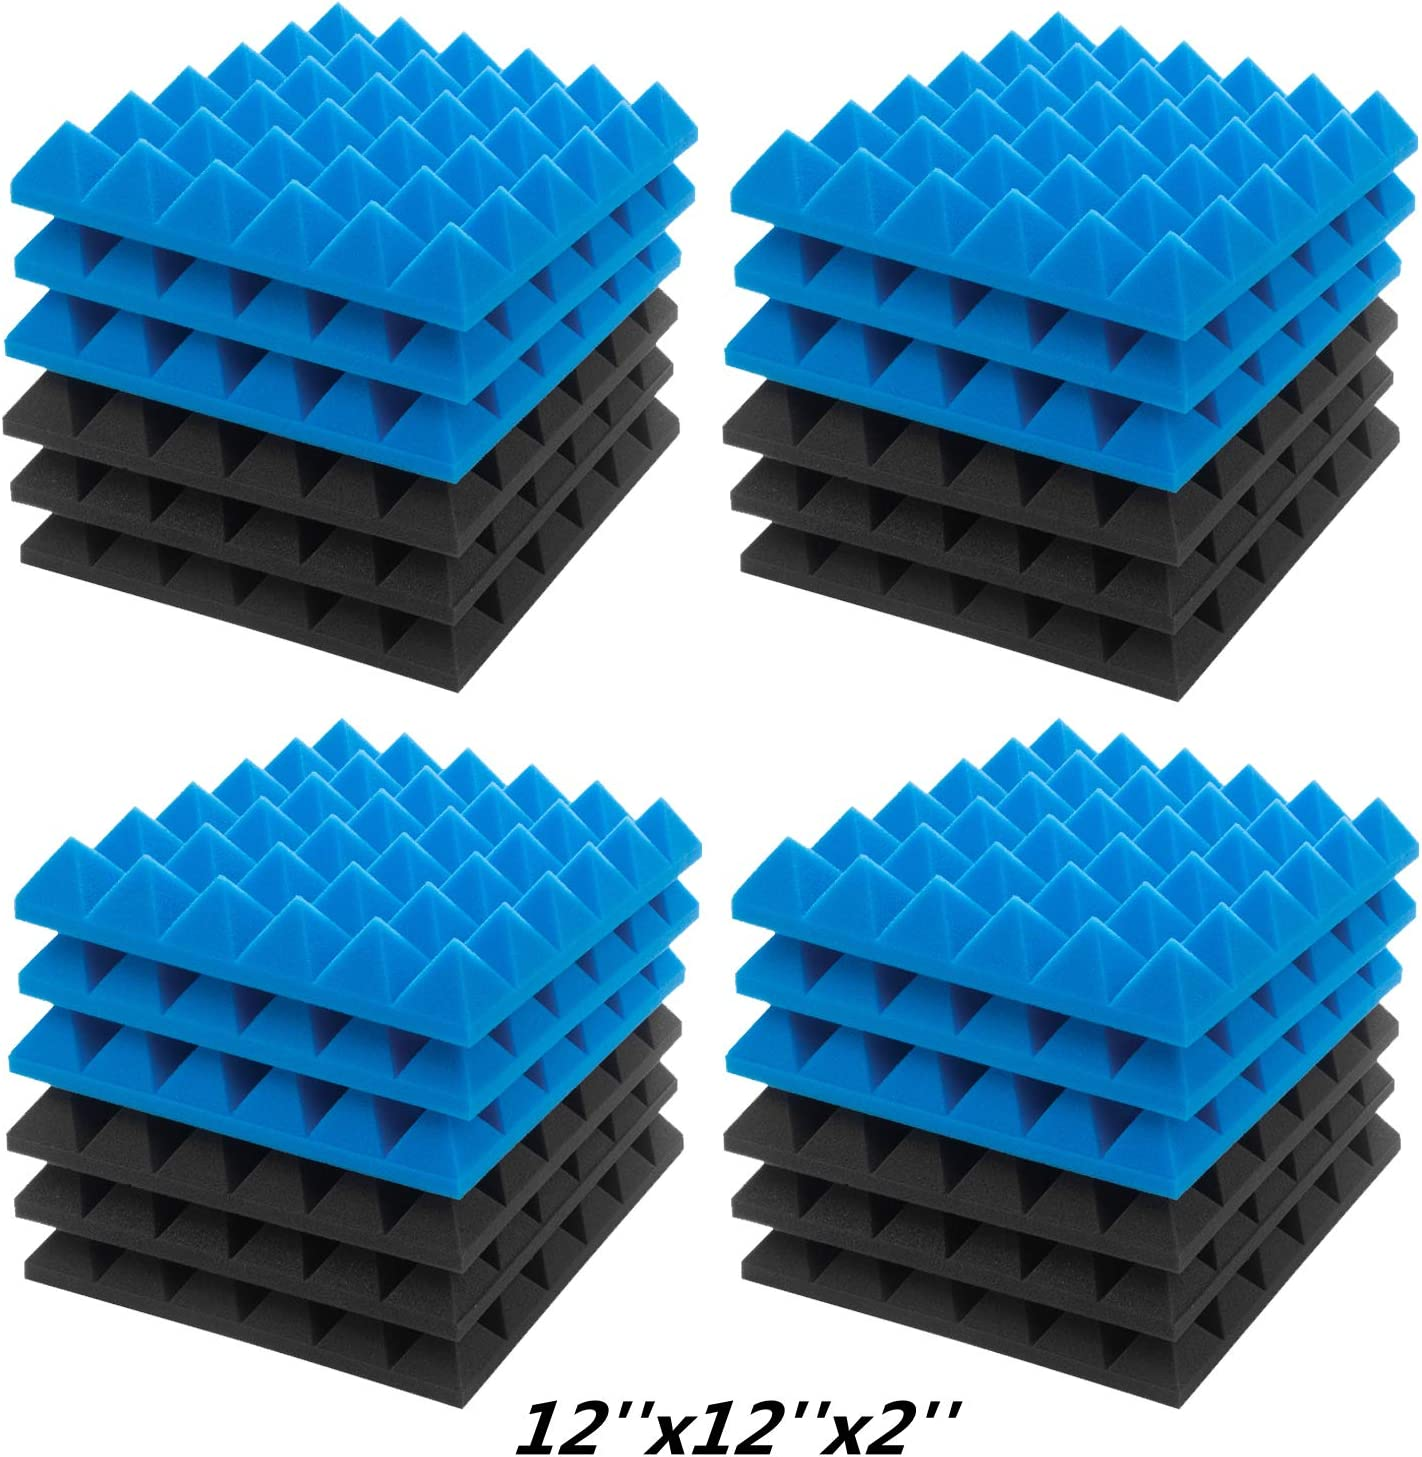 """JBER Acoustic Sound Foam Panels, 24 Pack 2"""" X 12"""" X 12"""" Blue and Black Soundproofing Treatment Studio Wall PaddingSound Absorbing Fireproof Pyramid Acoustic Treatment"""